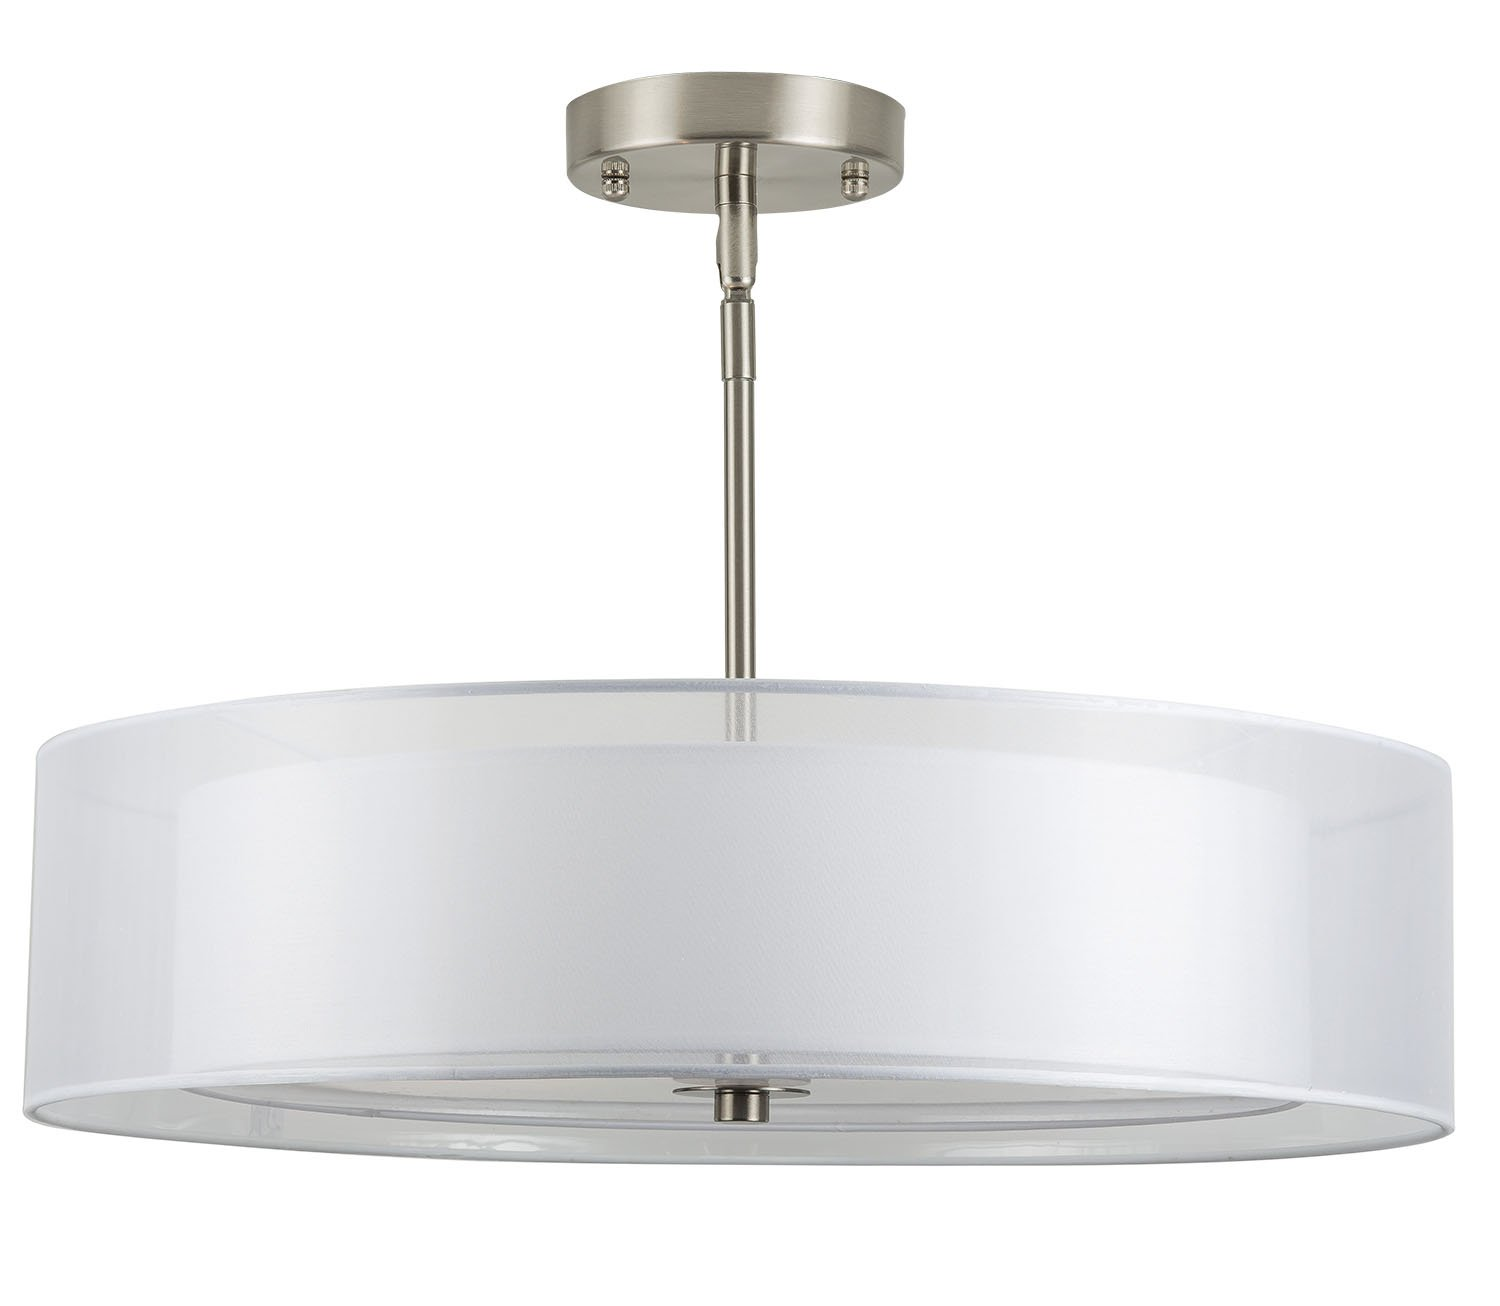 Grazia 20-Inch Three-Light Double Drum Chandelier, Convertible Ceiling Light Fixture, Brushed Nickel with a White Fabric Shade - Linea di Liara LL-P117-BN